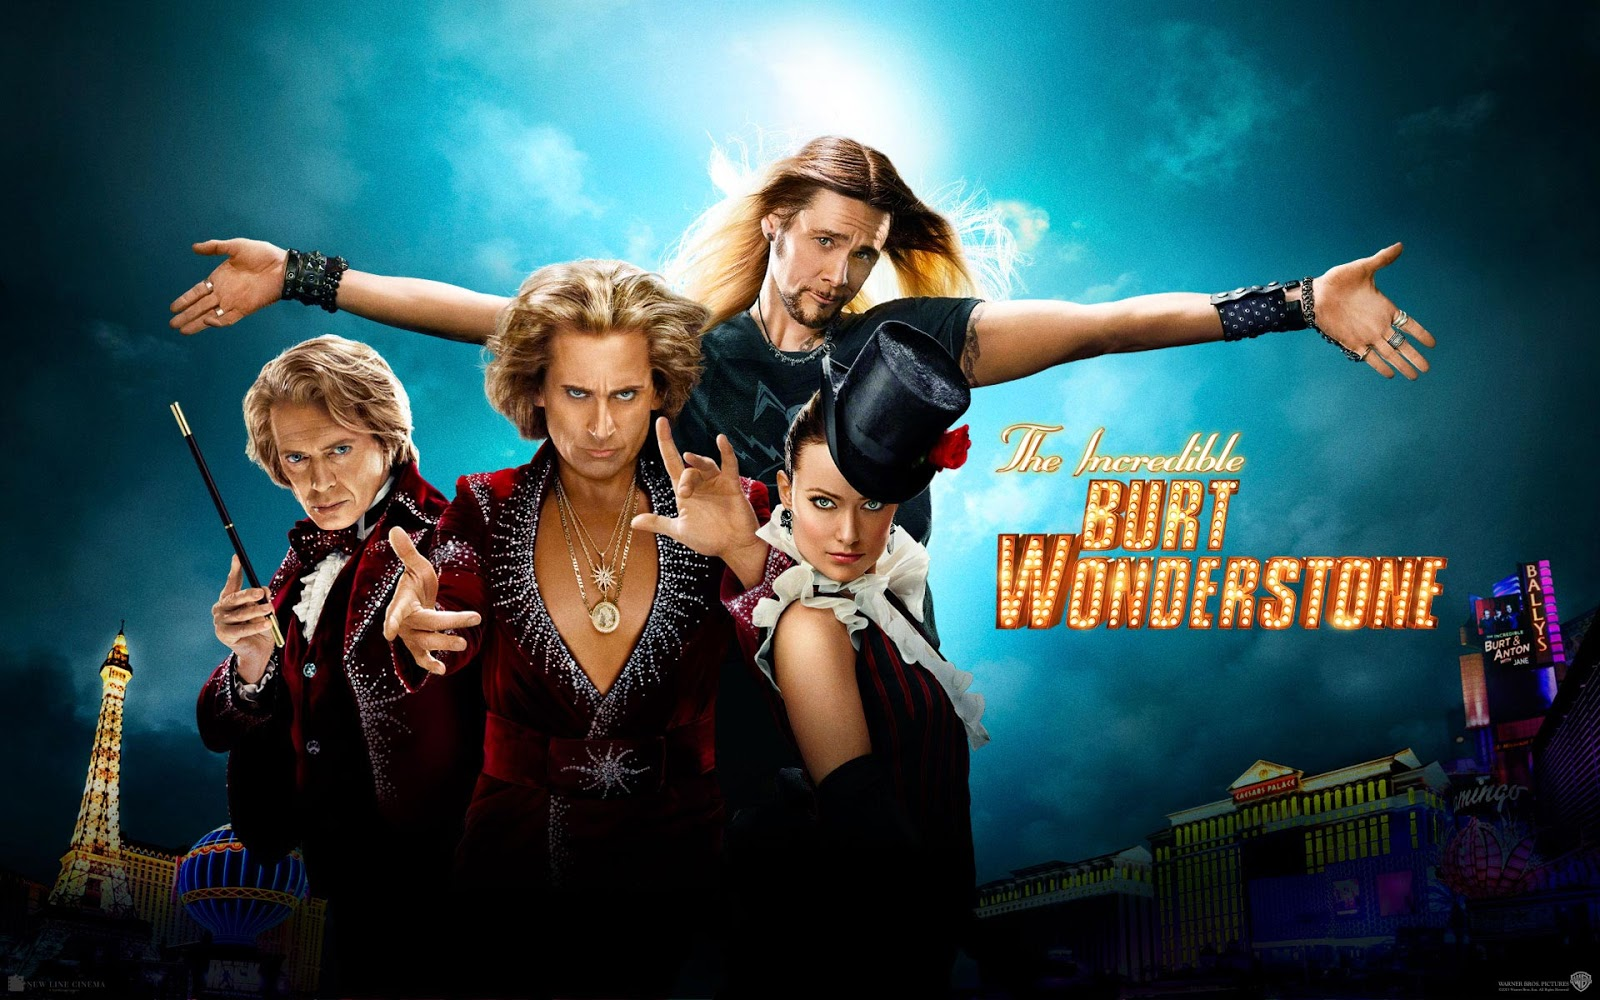 http://1.bp.blogspot.com/-Ekvkn_zTK7o/UU35_IRUCAI/AAAAAAAAIFc/4TEjQ4oBUvw/s1600/The-Incredible-Burt-Wonderstone_08.jpg